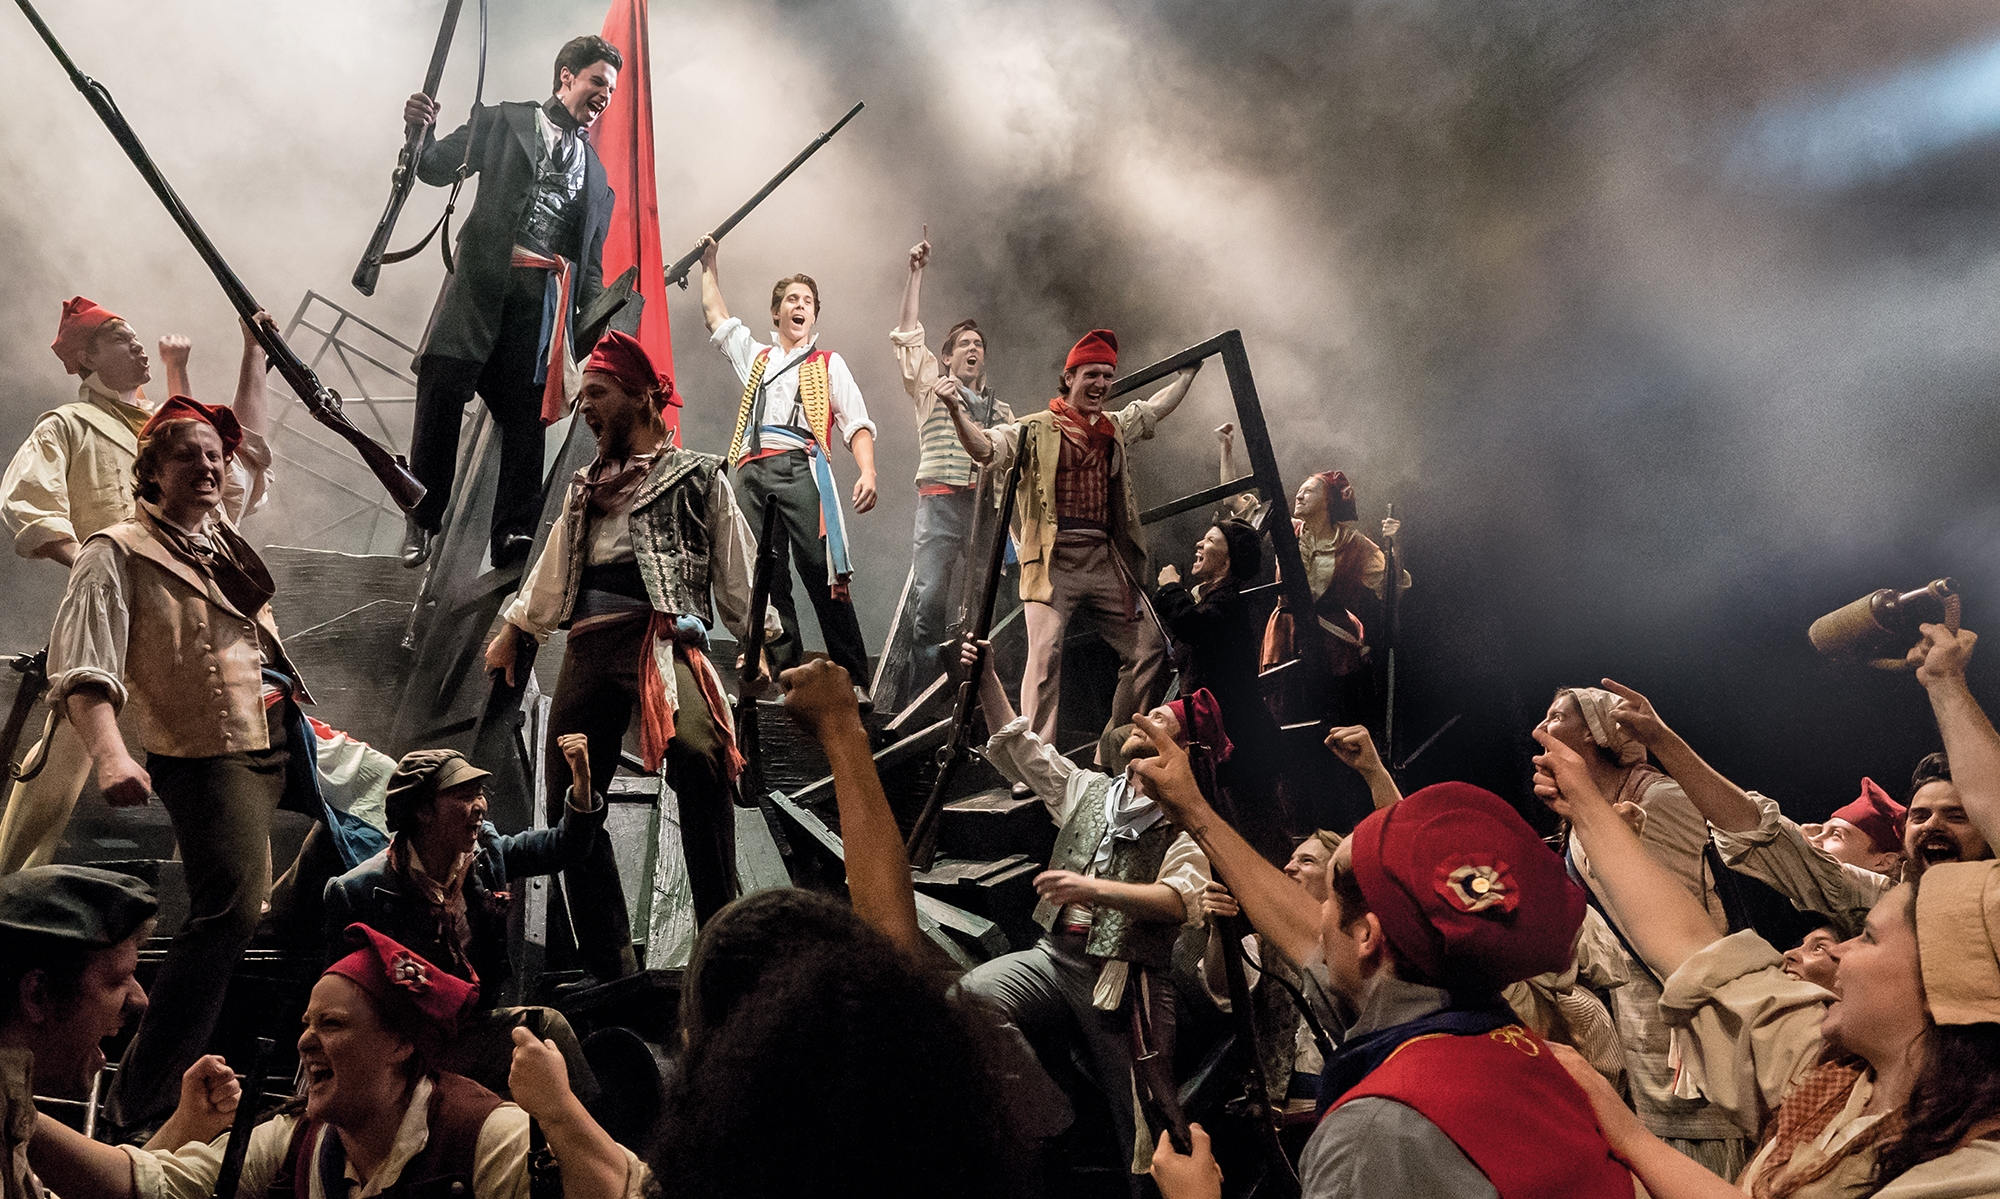 A group of French rebels from Les Mis gather around the barricades, raising their fists in solidarity.